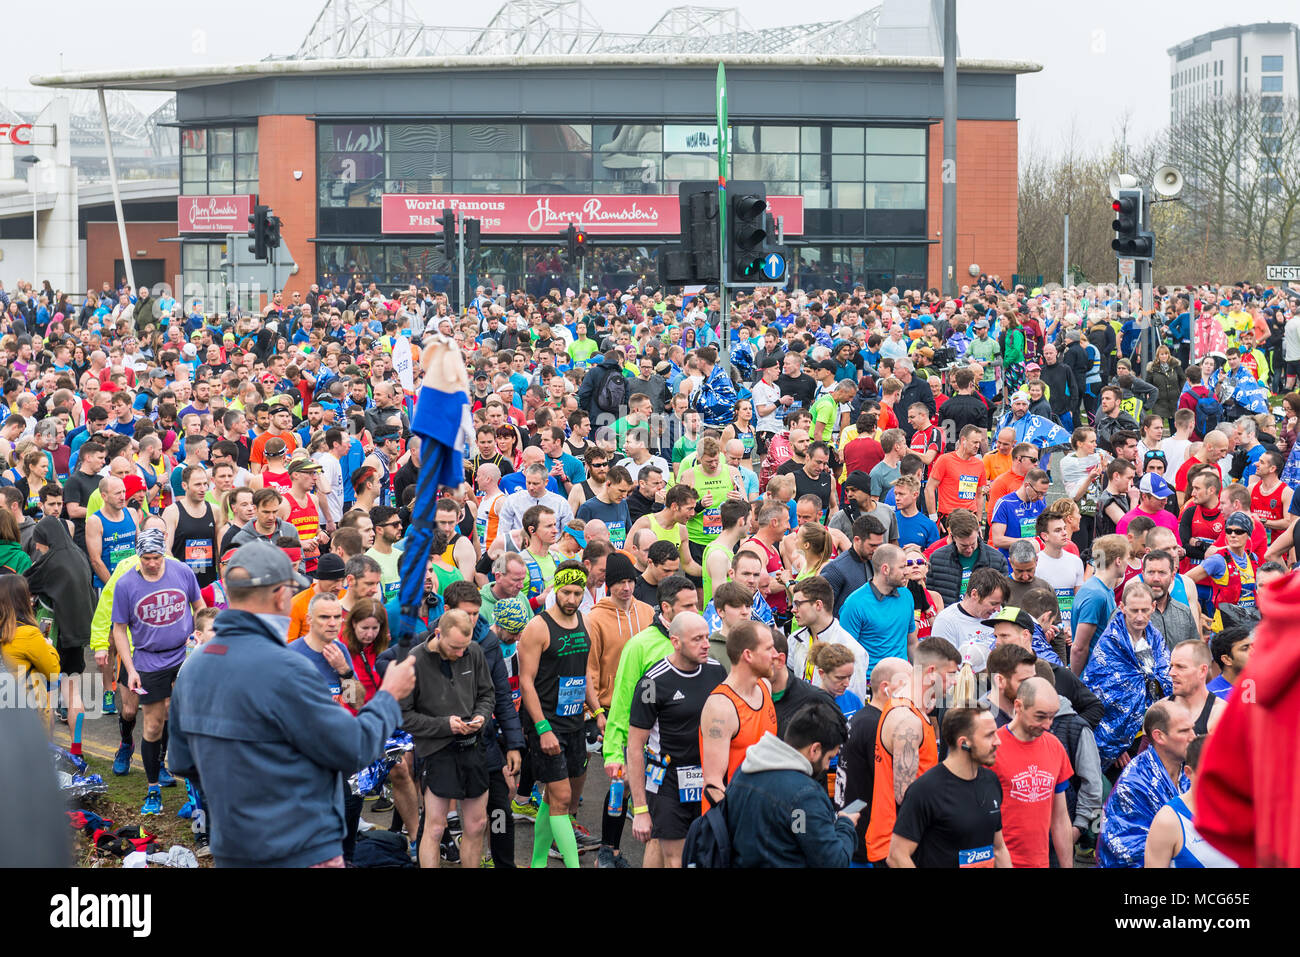 MANCHESTER, ENGLAND - 08 APRIL, 2018: RUNNERS AT THE GREATER MANCHESTER MARATHON in Manchester, UK - Stock Image